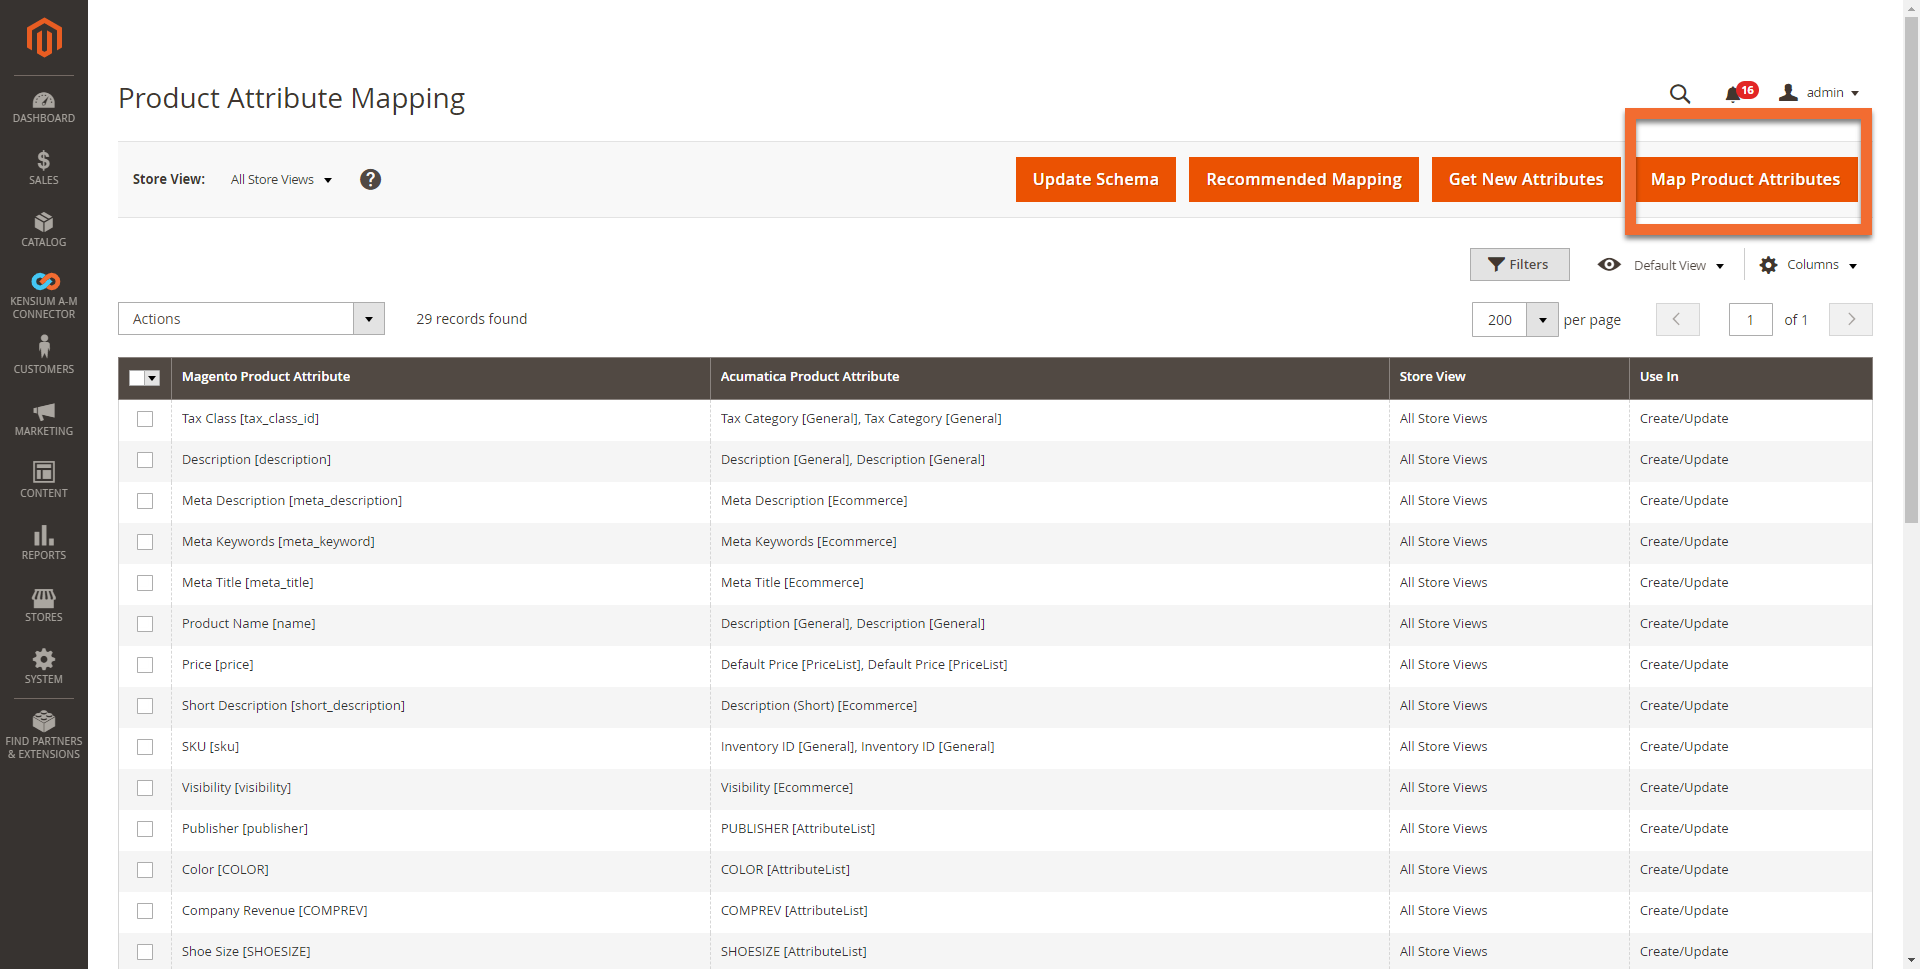 Product Attribute Mapping Screen in Magento